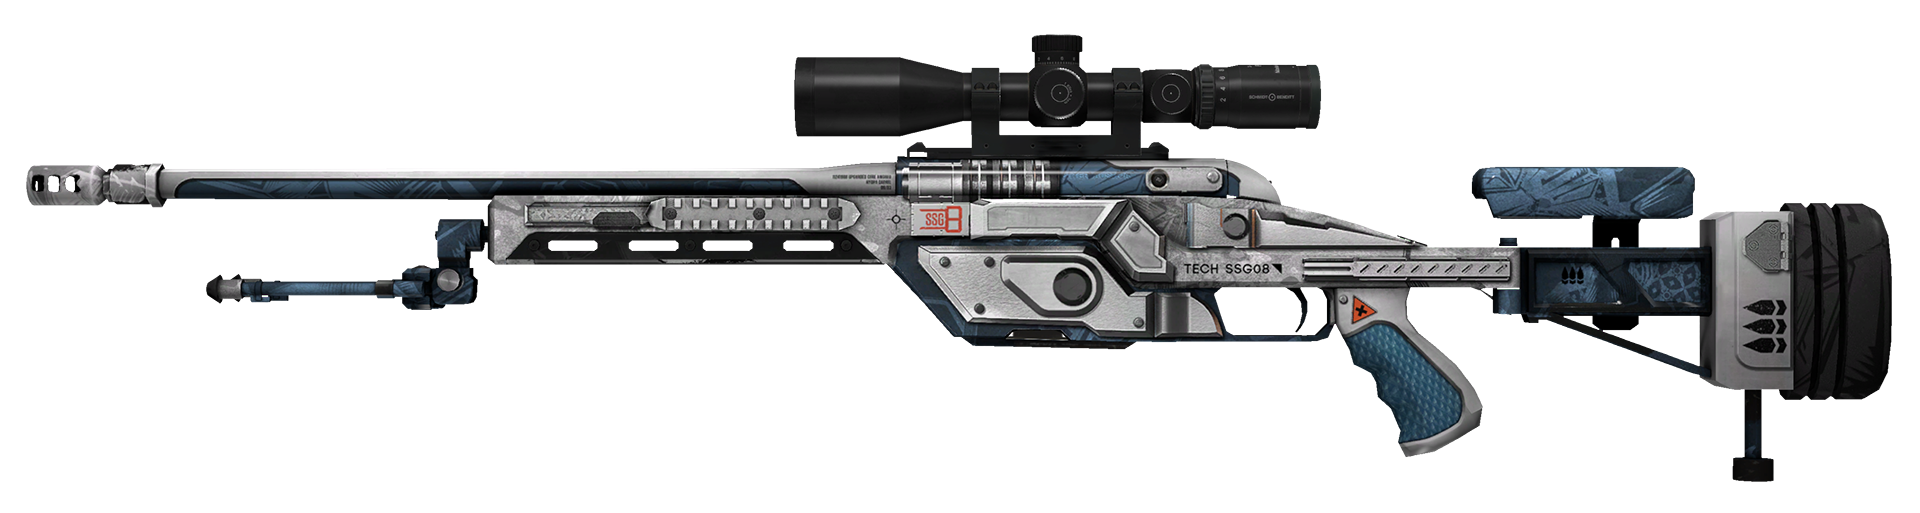 SSG 08 Ghost Crusader Large Rendering